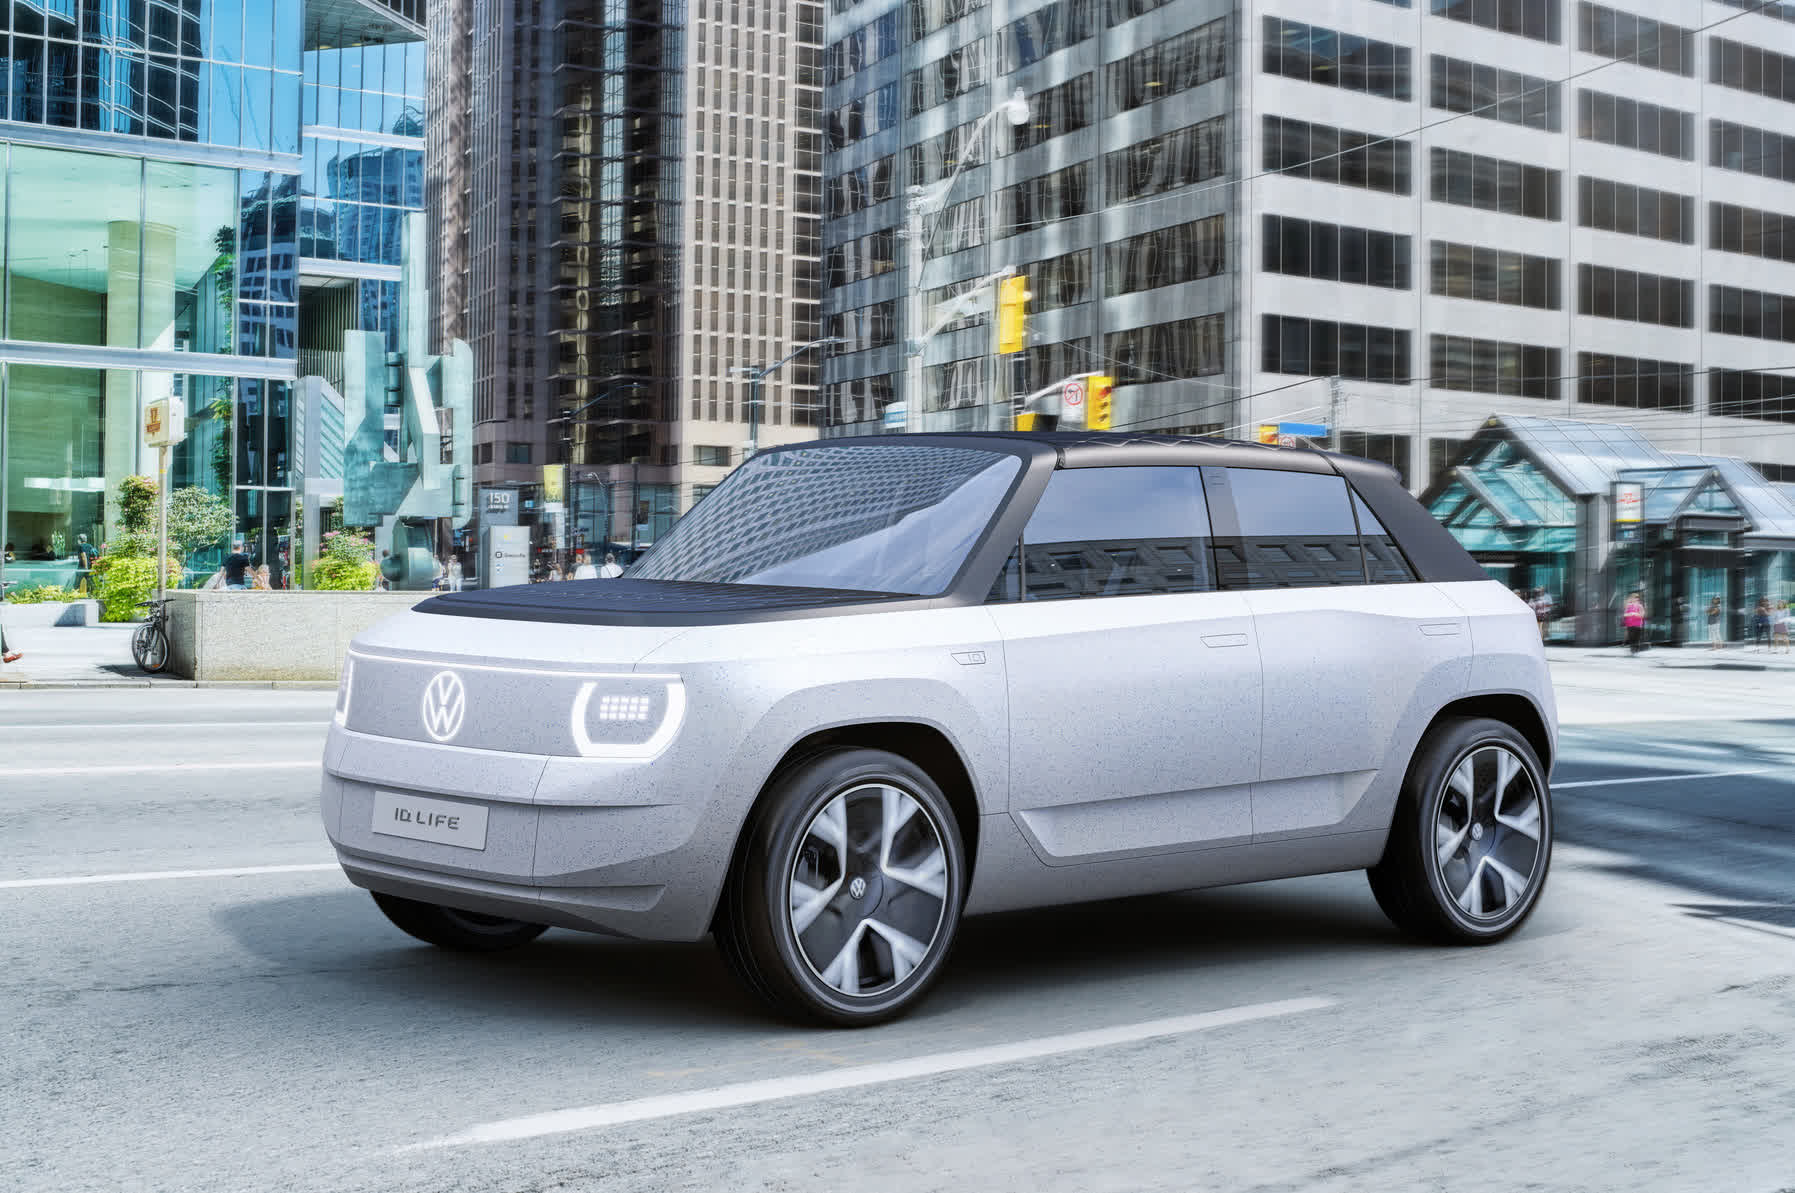 New Volkswagen ID. Life will bring EV to the entry-level in 2025